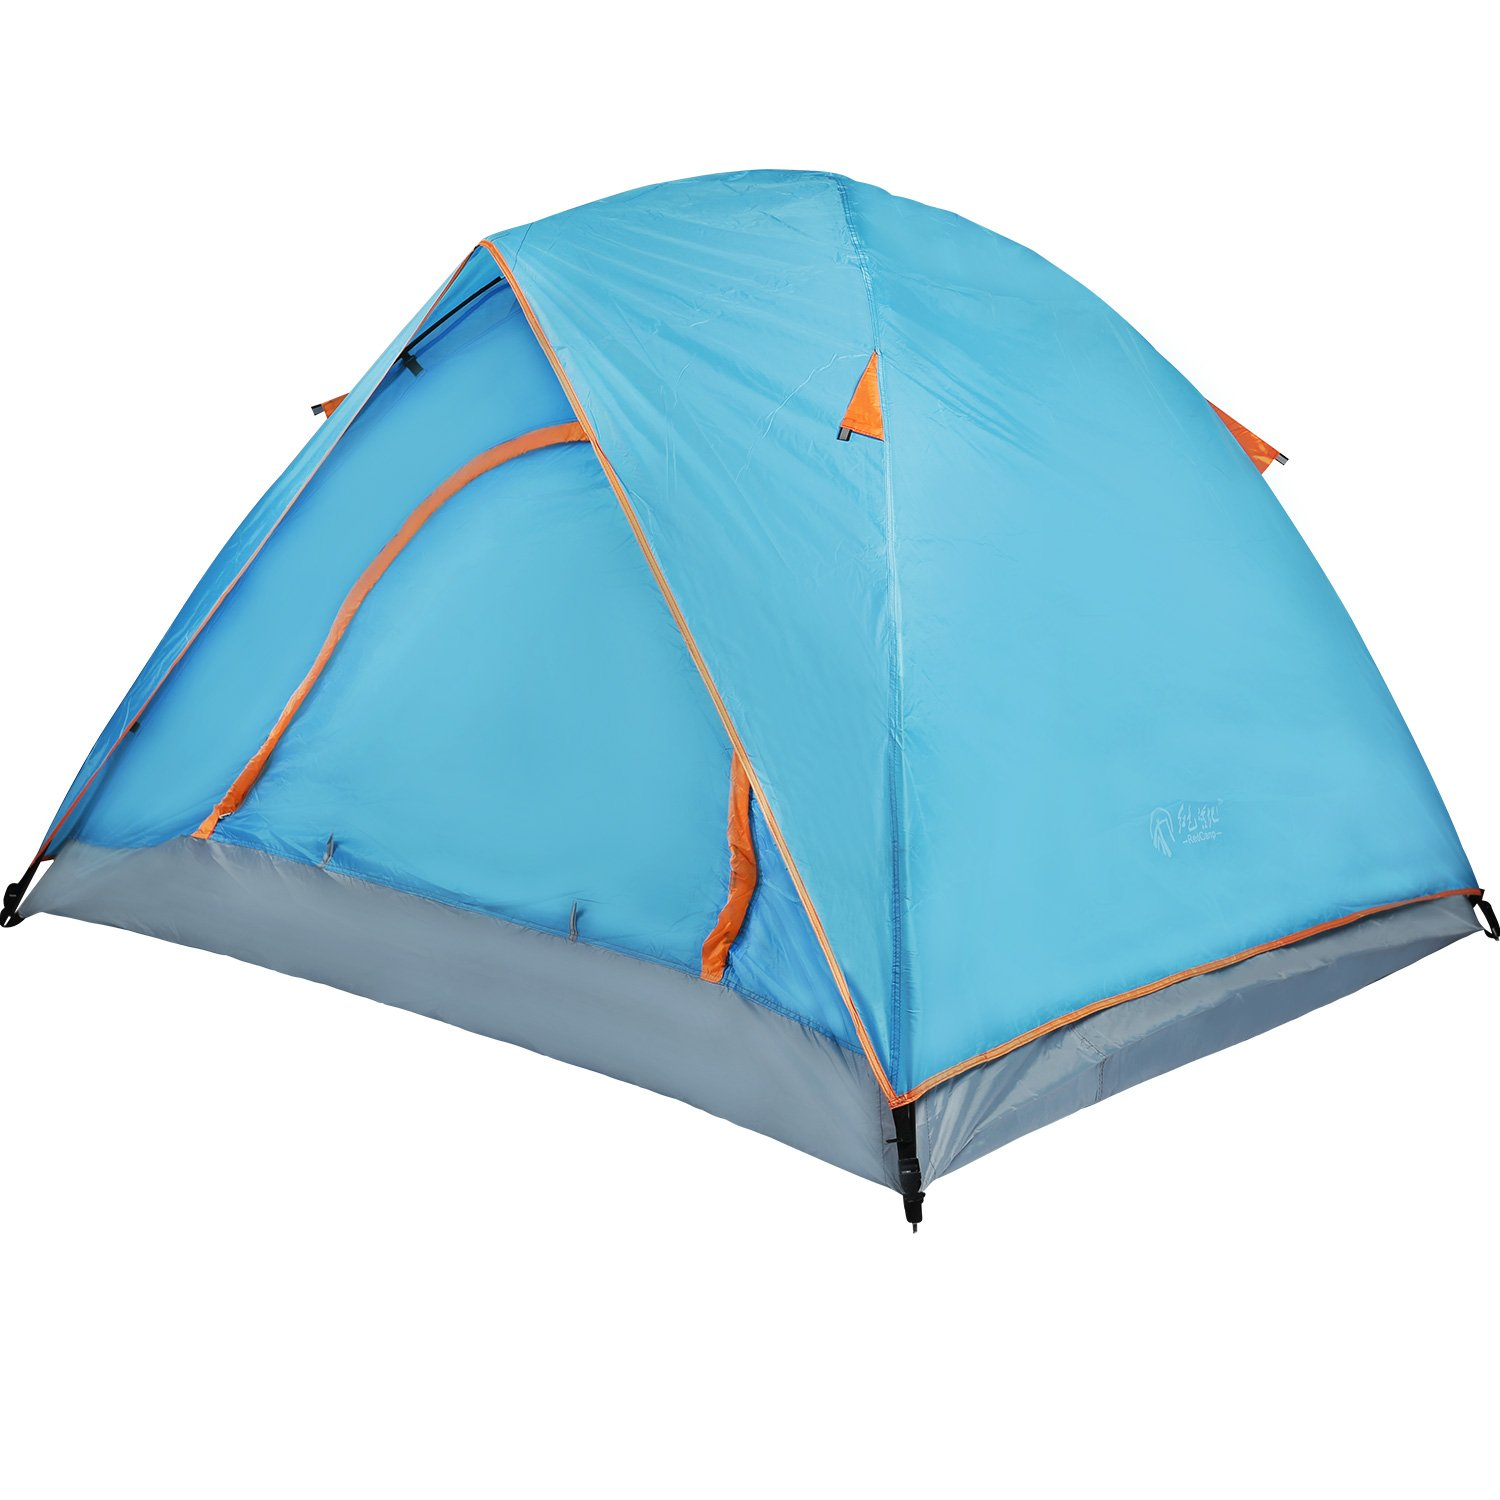 REDCAMP 2 Person Camping Tent Waterptoof, 3 Season Lightweight Dome Tent with Double Layers for Outdoor Backpacking, Blue by REDCAMP